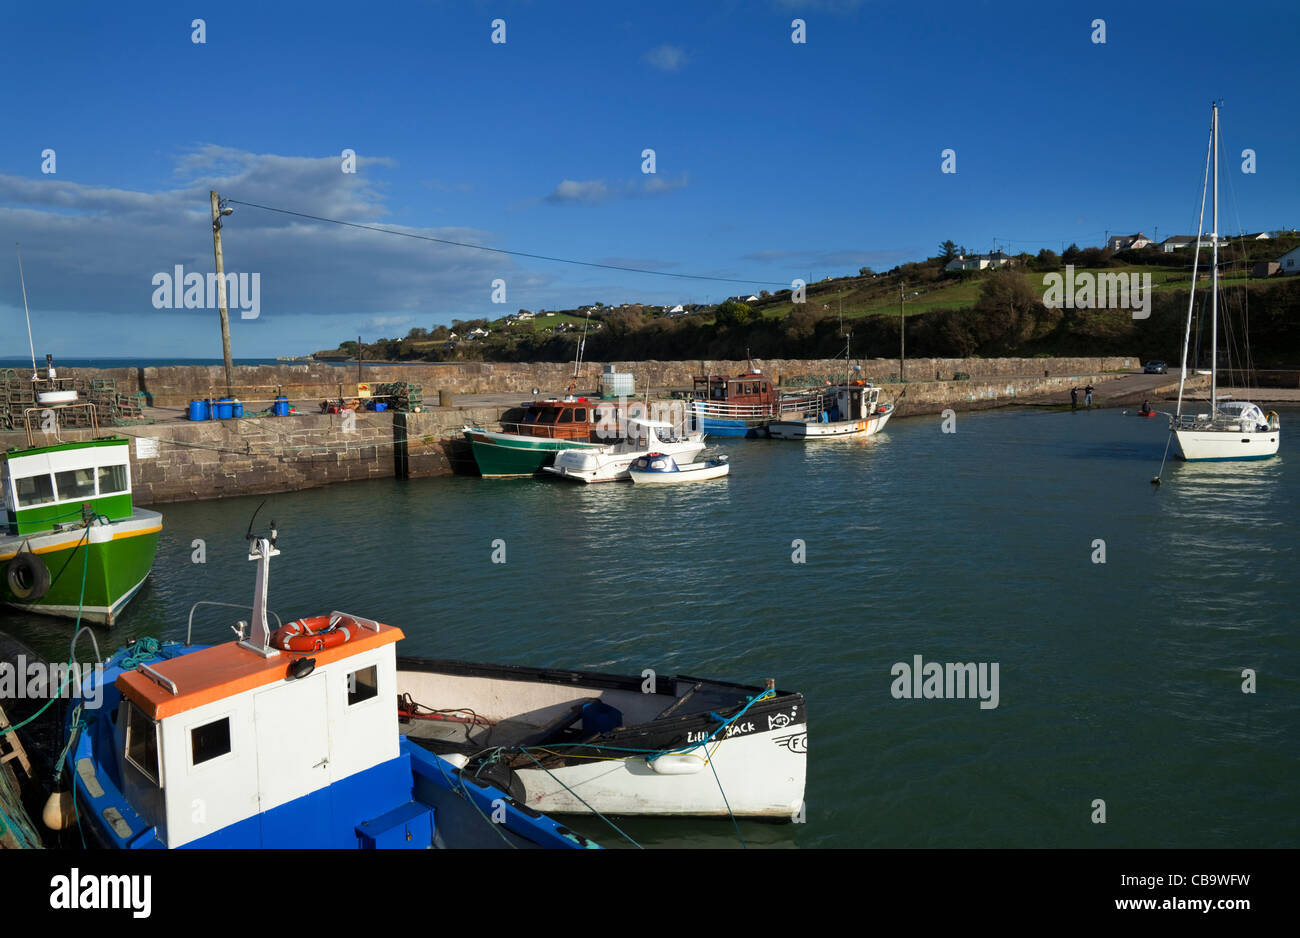 Ballynagaul Pier, The Ring Gaeltacht Area, County Waterford, Ireland - Stock Image